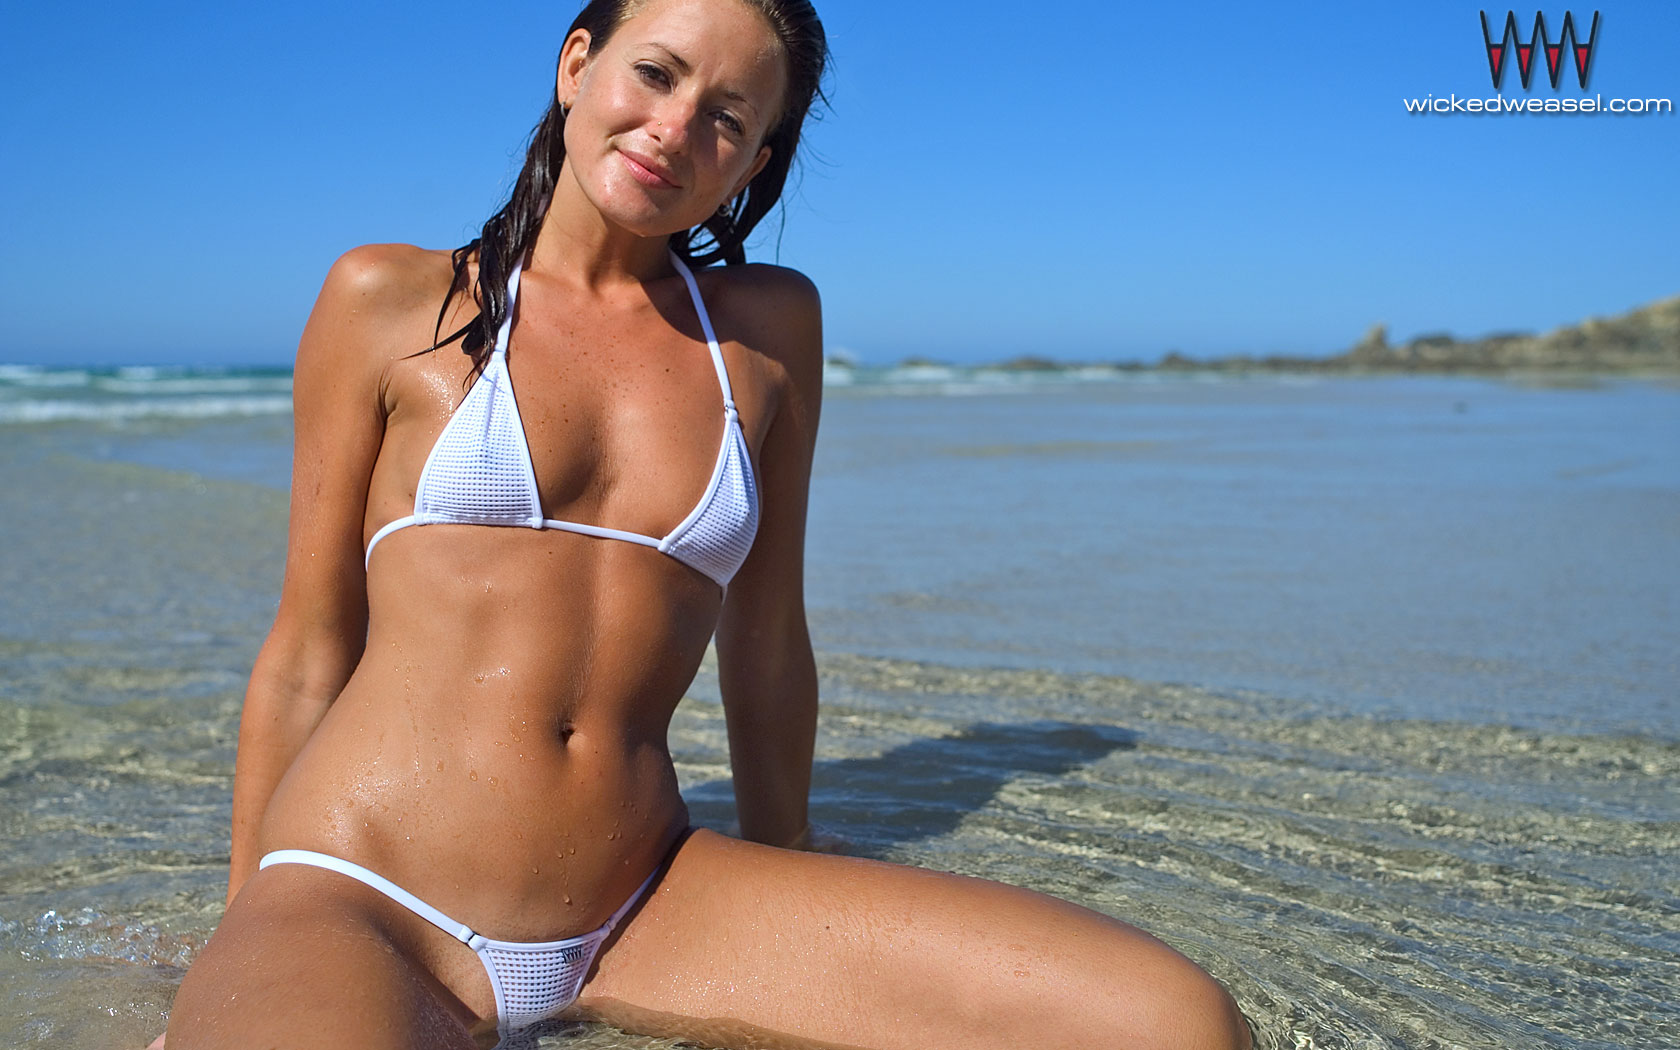 """Search Results for """"Wicked Weasel Contributor Archives ..."""